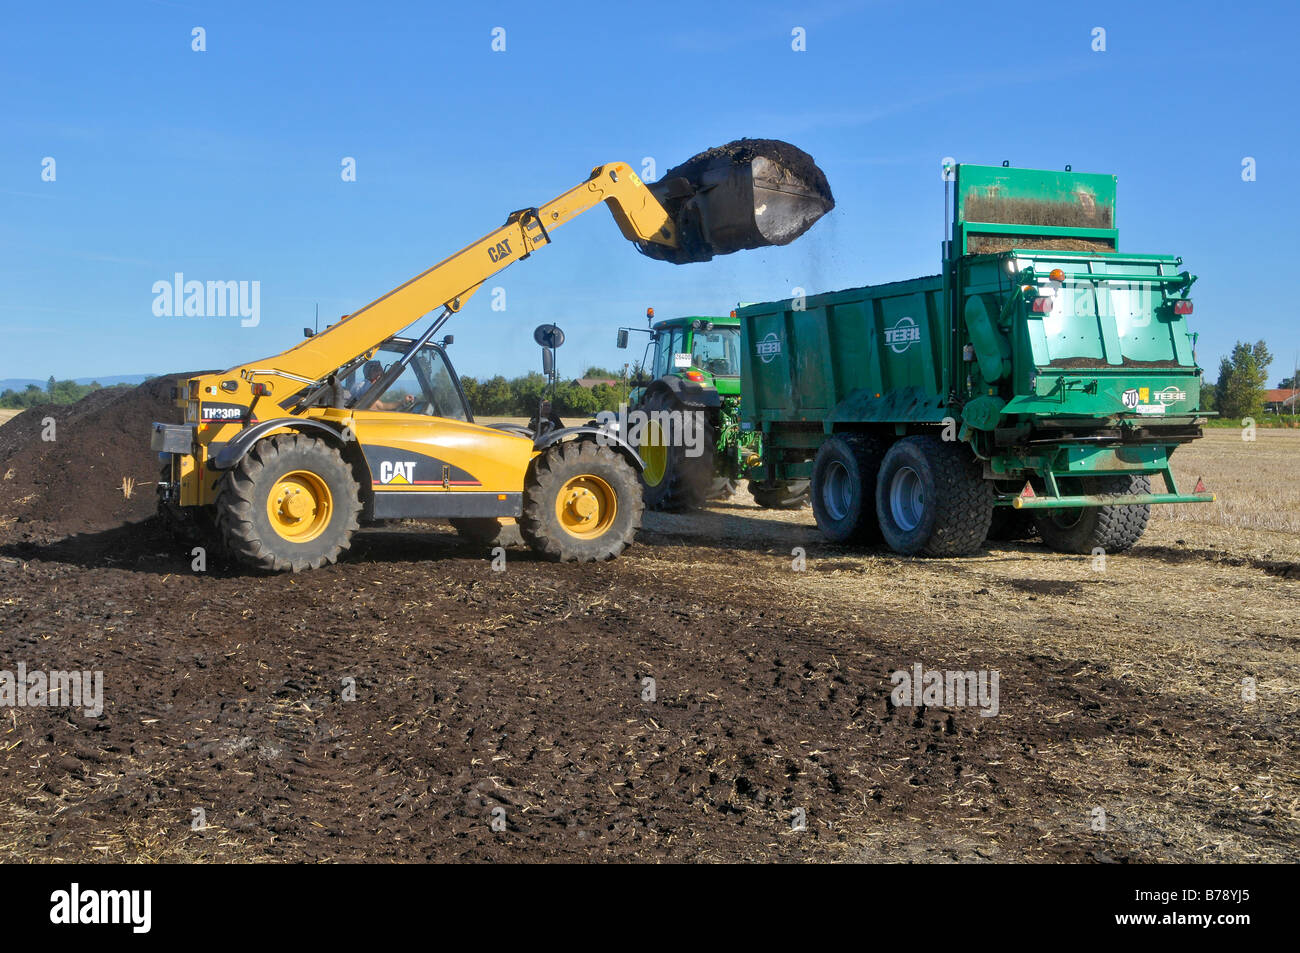 A CAT telescopic  handler  (TH330B) filled with a compost spreader. Stock Photo